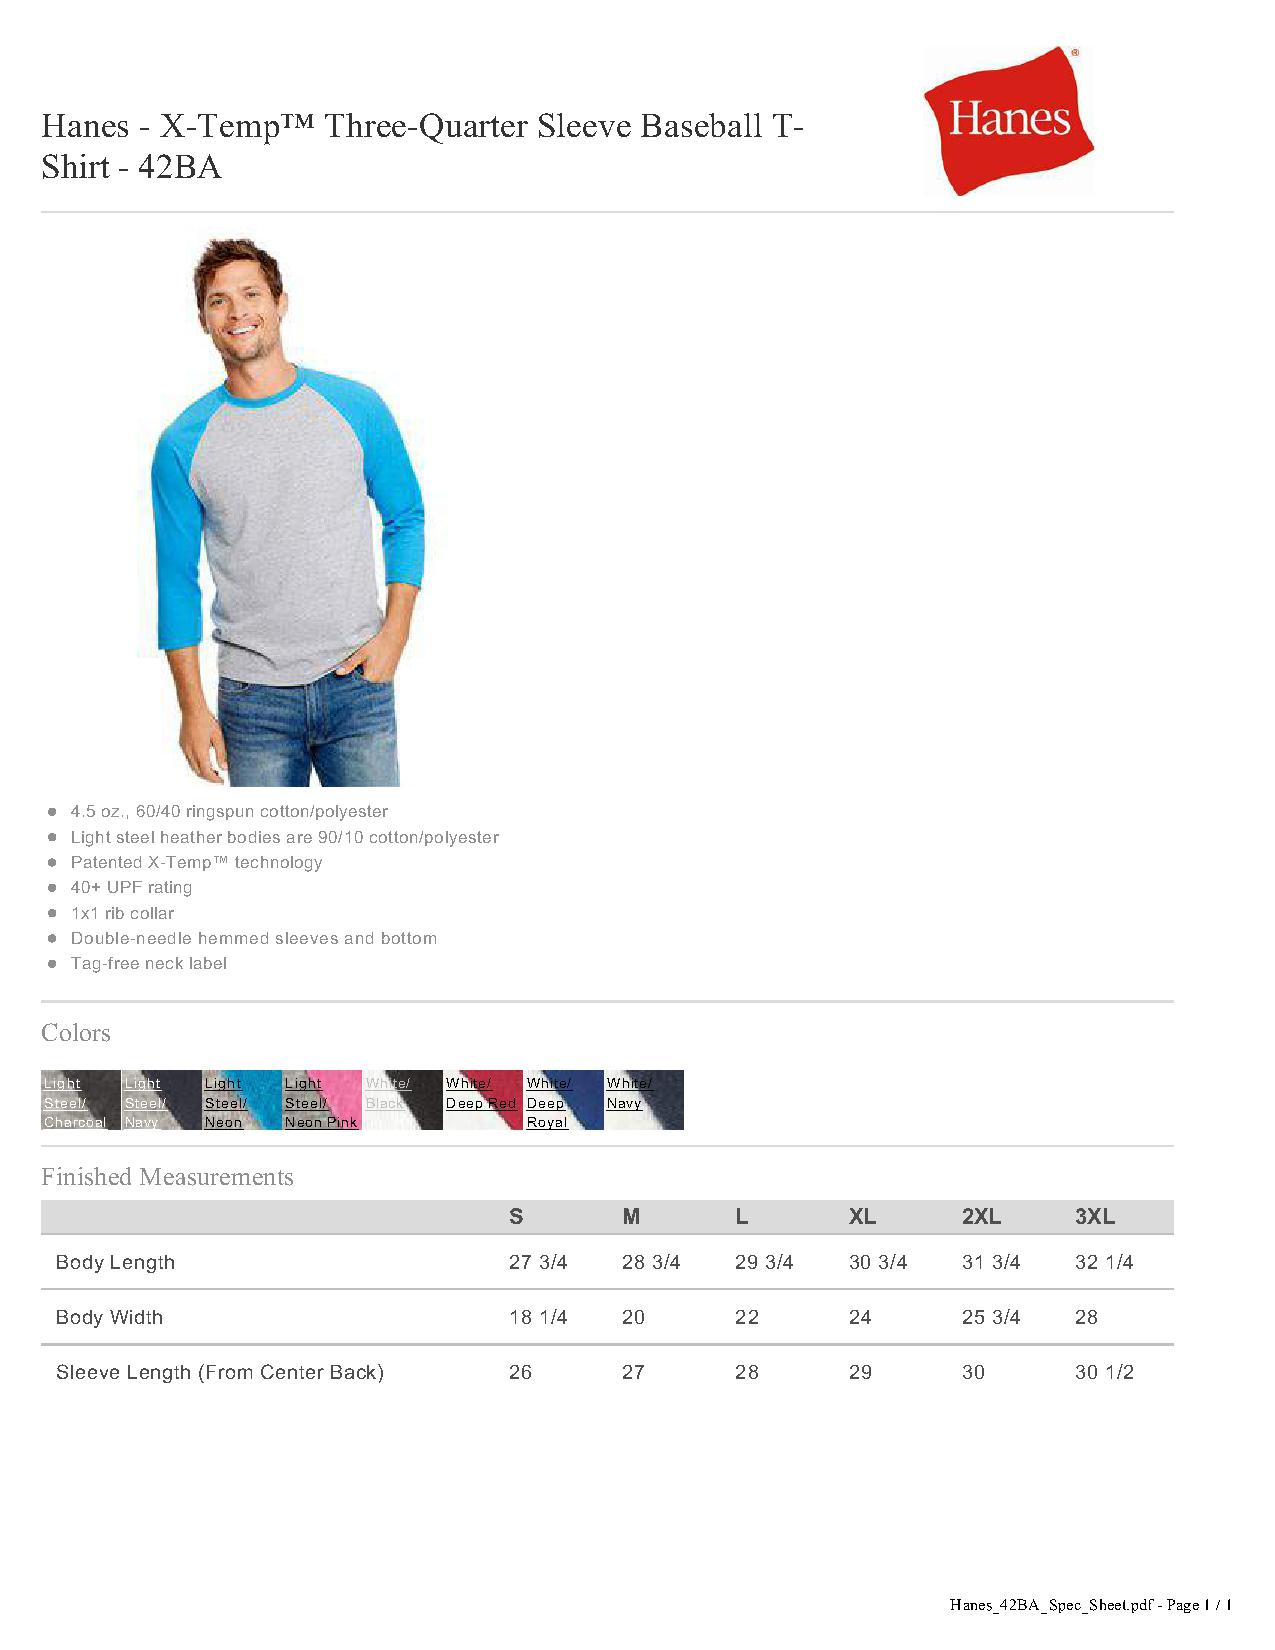 7e6b39f7f4179 Hanes 42BA - X-Temp Three-Quarter Sleeve Baseball T-Shirt  6.68 ...